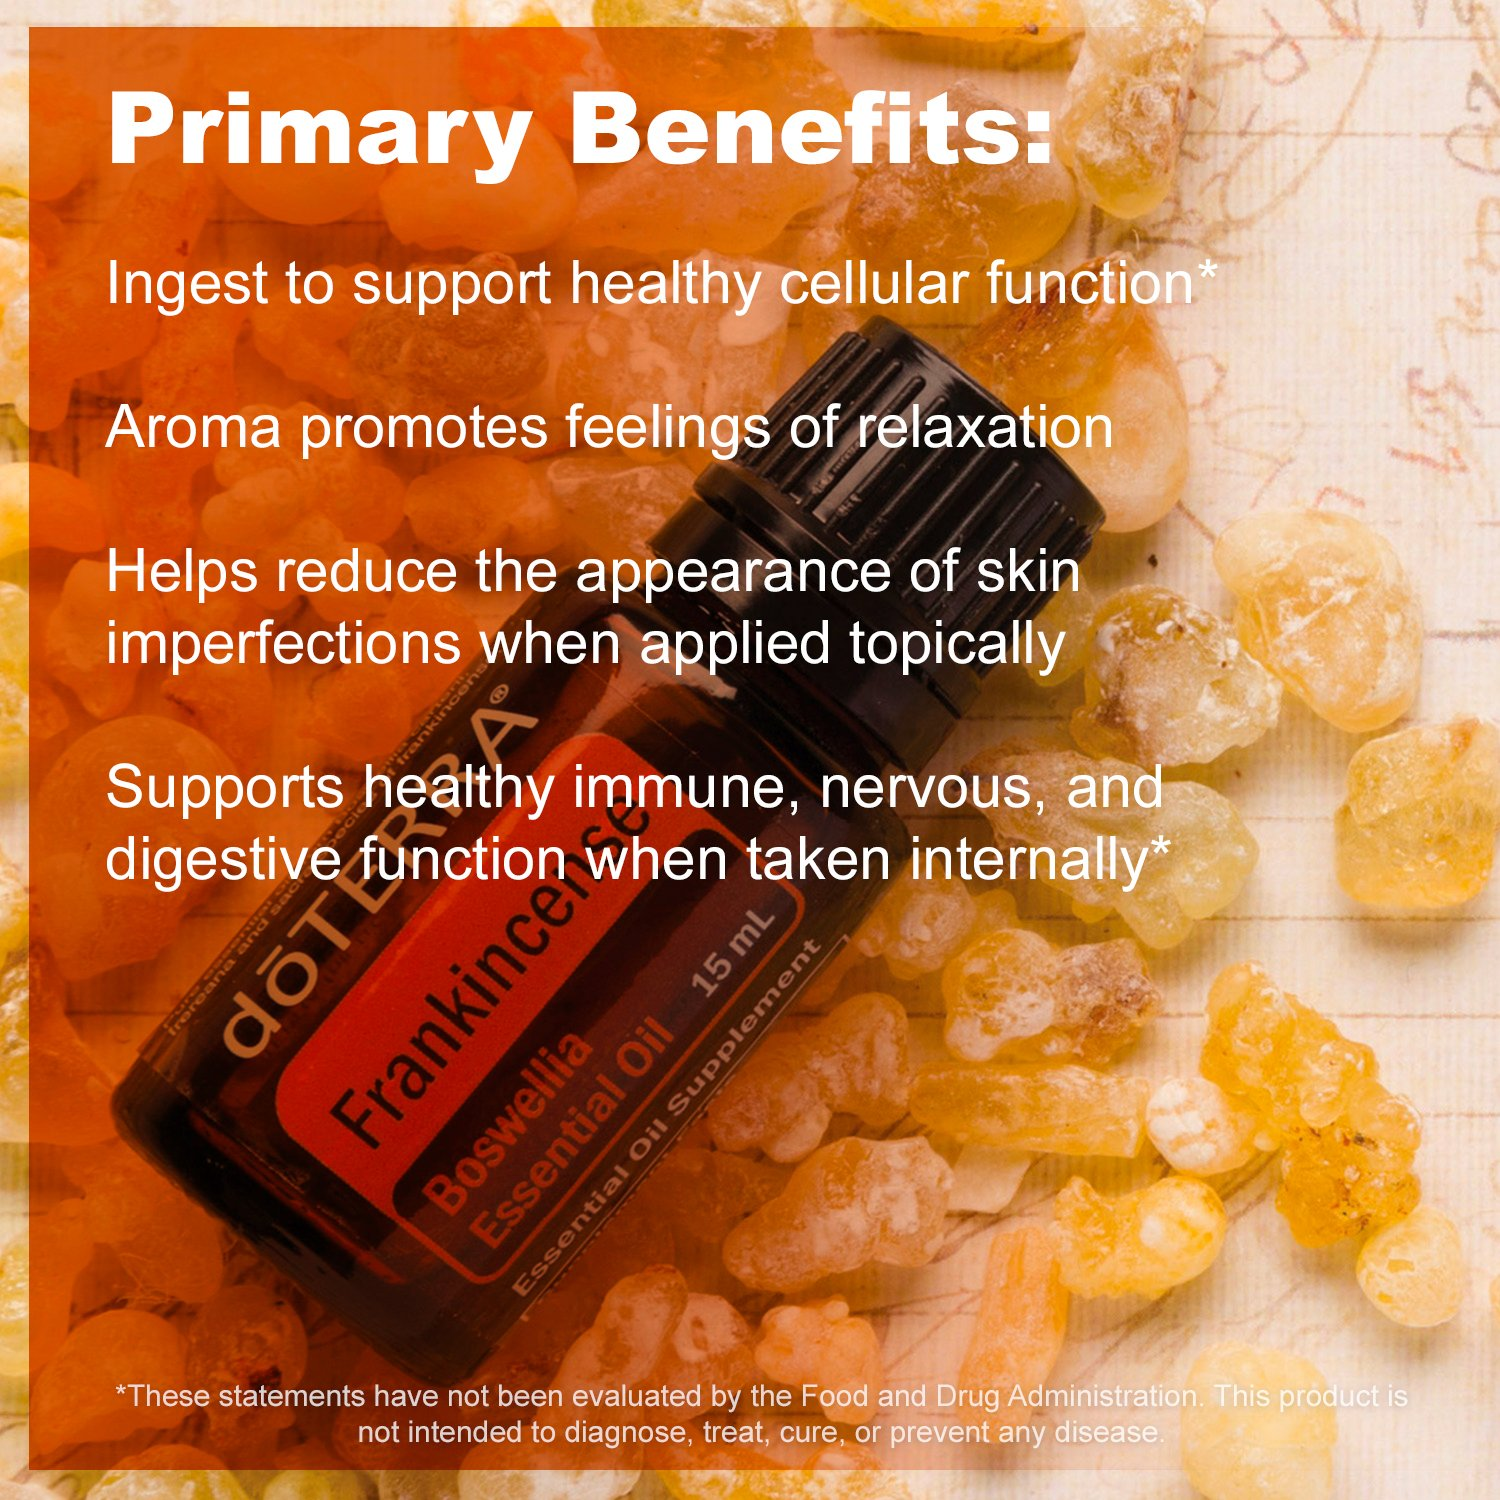 doTERRA Frankincense Essential Oil - Supports Healthy Cellular Function, Aroma Promotes Relaxing Feelings, Supports Healthy Immune and Nervous Function; For Diffusion, Internal, or Topical Use - 15 ml by DoTerra (Image #7)